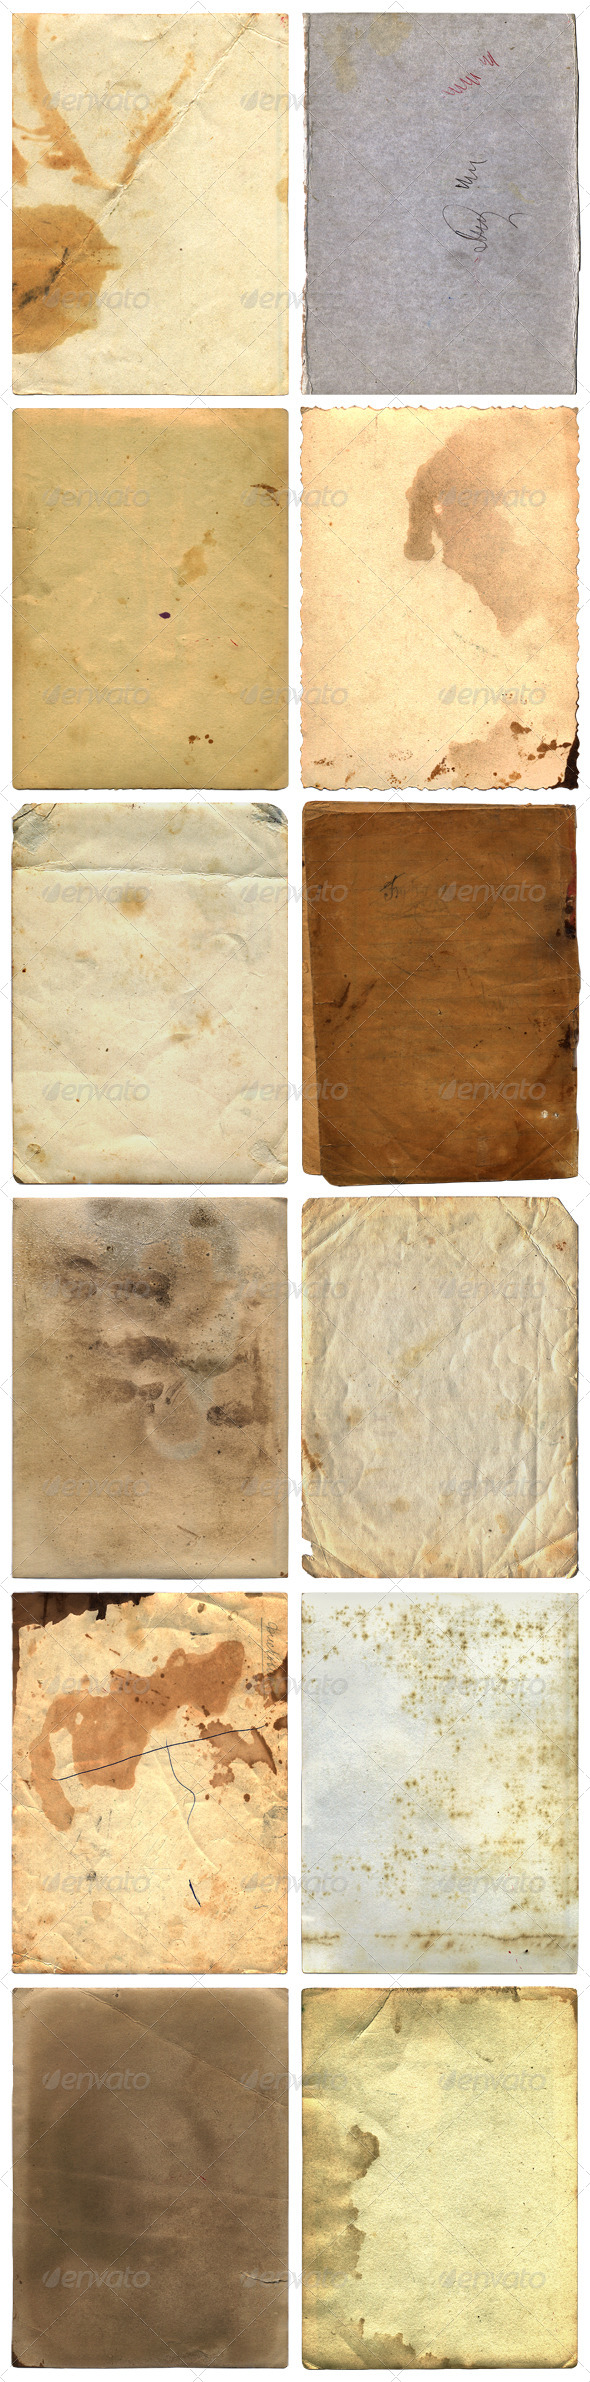 GraphicRiver Grunge Paper Backgrounds And Textures 4682526